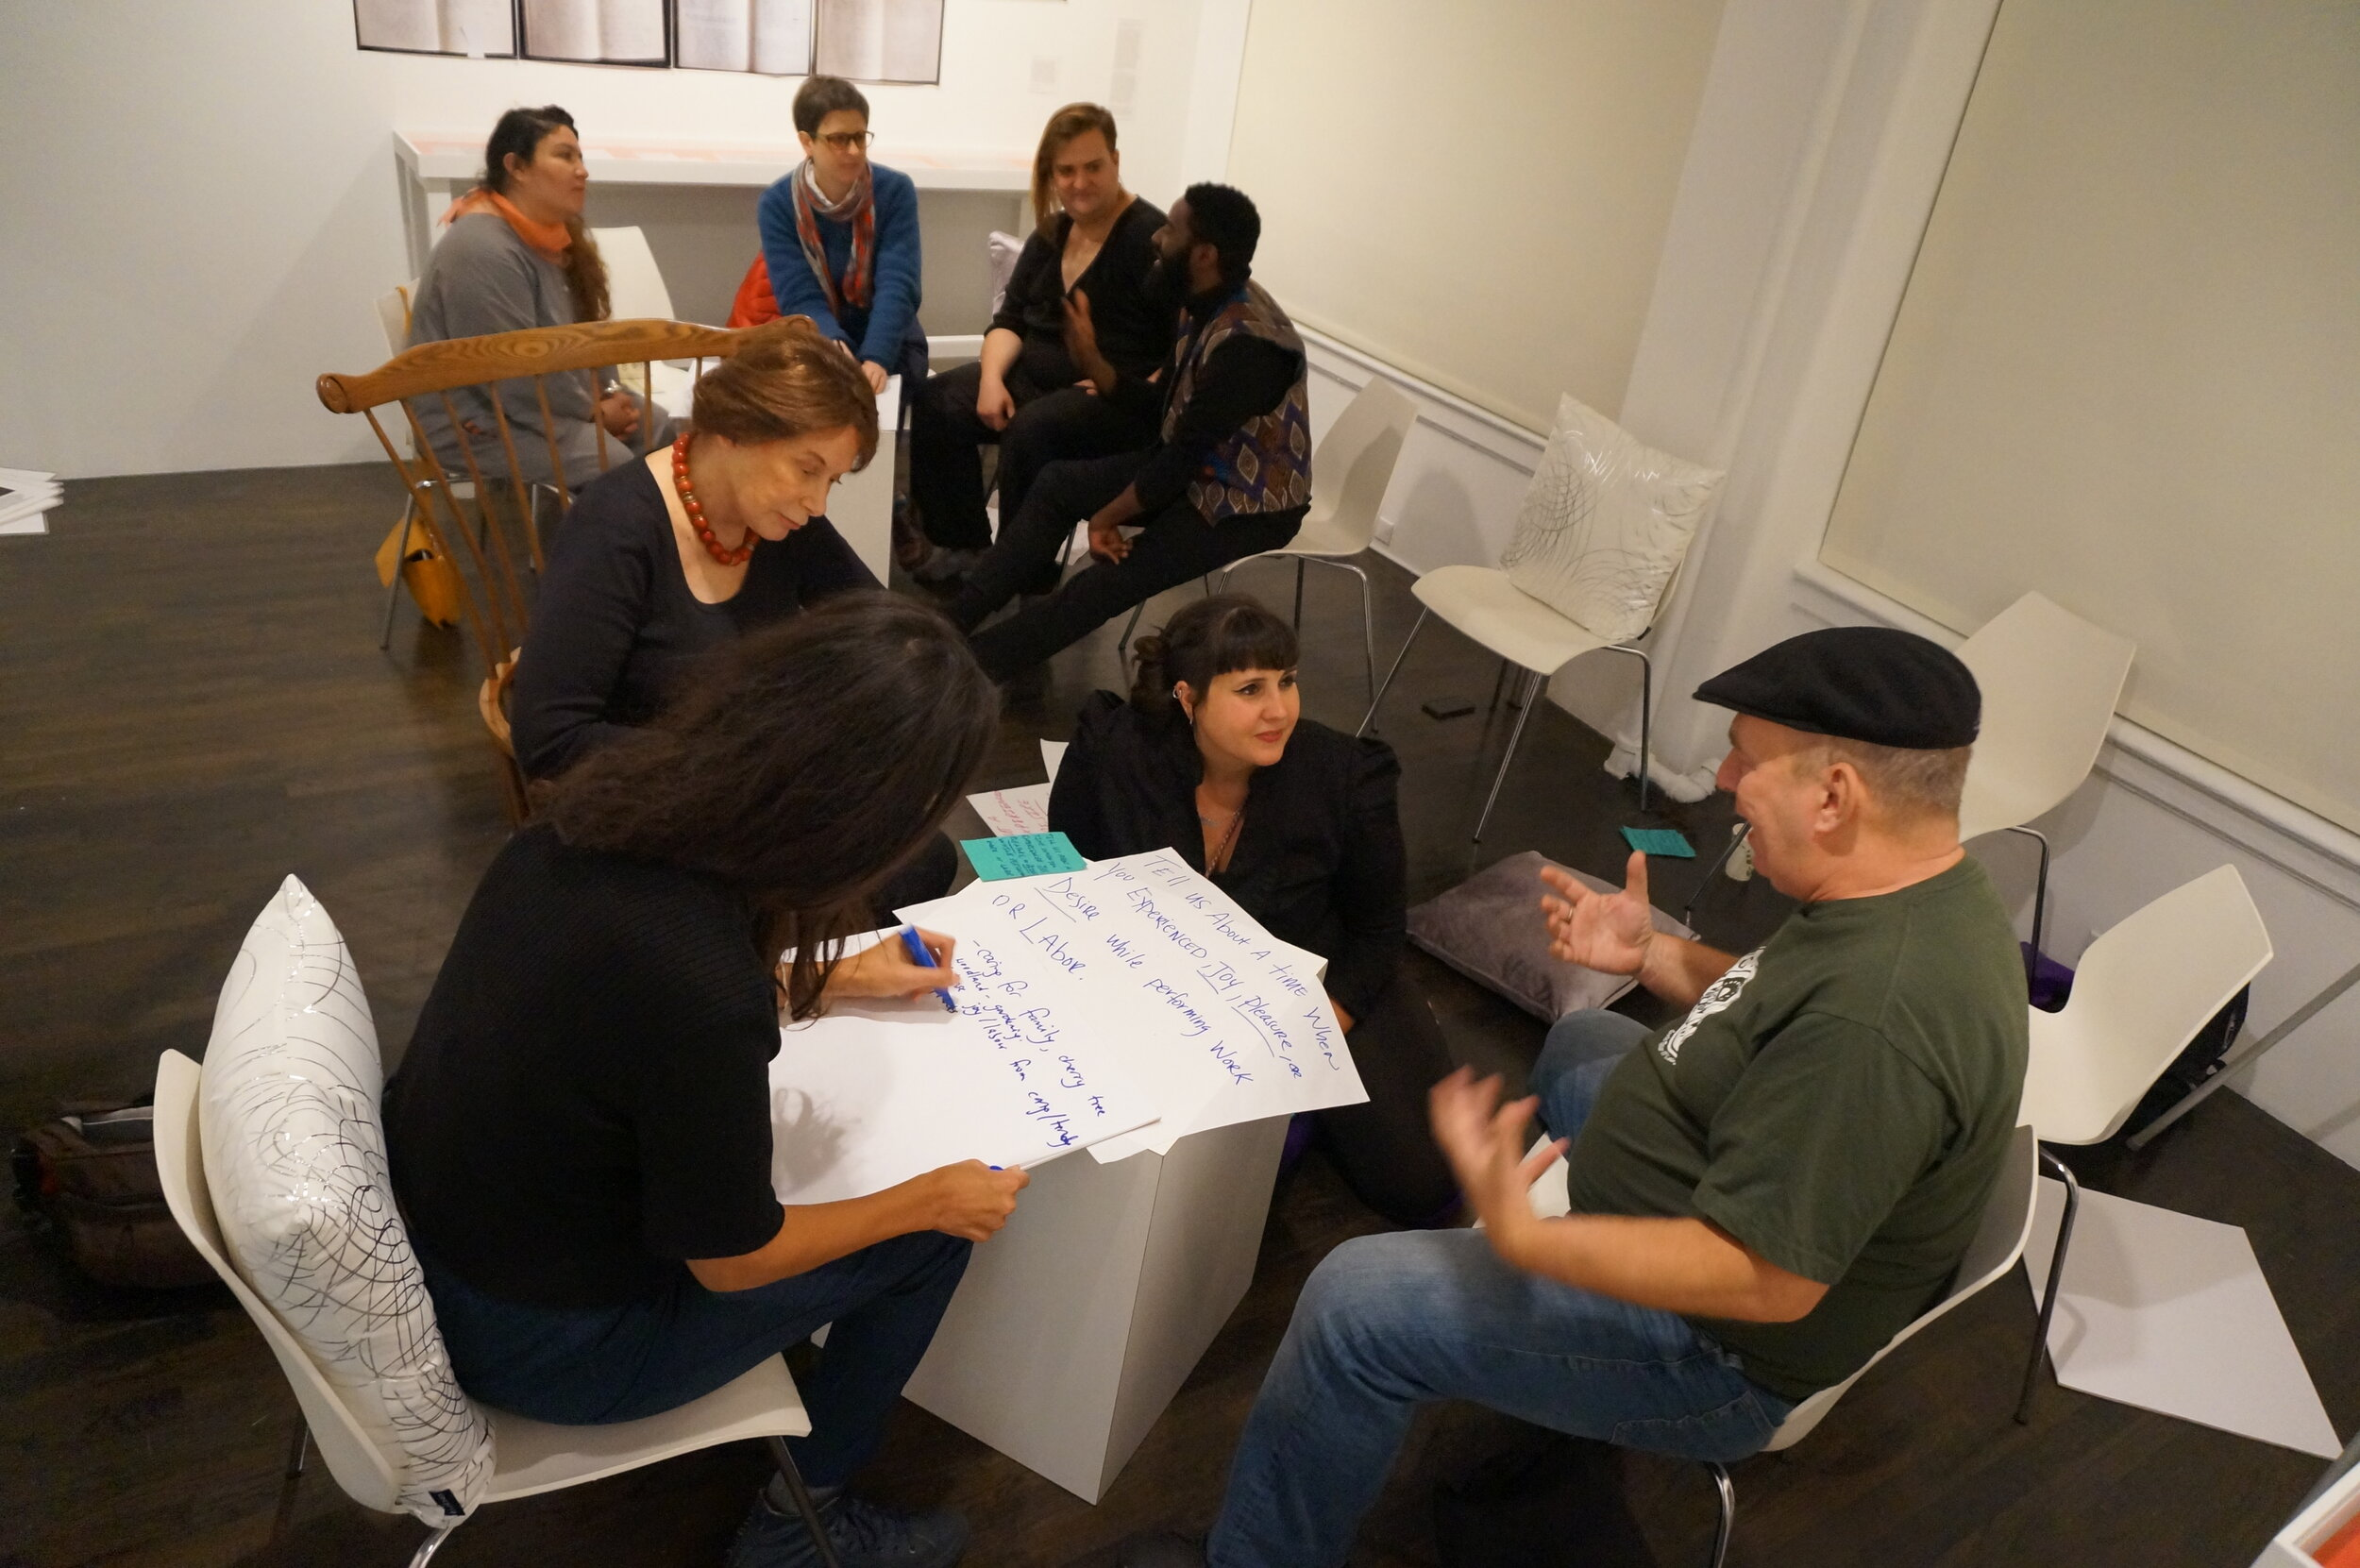 Image from workshop during Show don't Tell at the 8th floor/rubin foundation. Mel and Adelaide sit in conversation with six workshop participants while attendees write ideas on butcher paper.    image courtesy of the 8th Floor/Rubin foundation